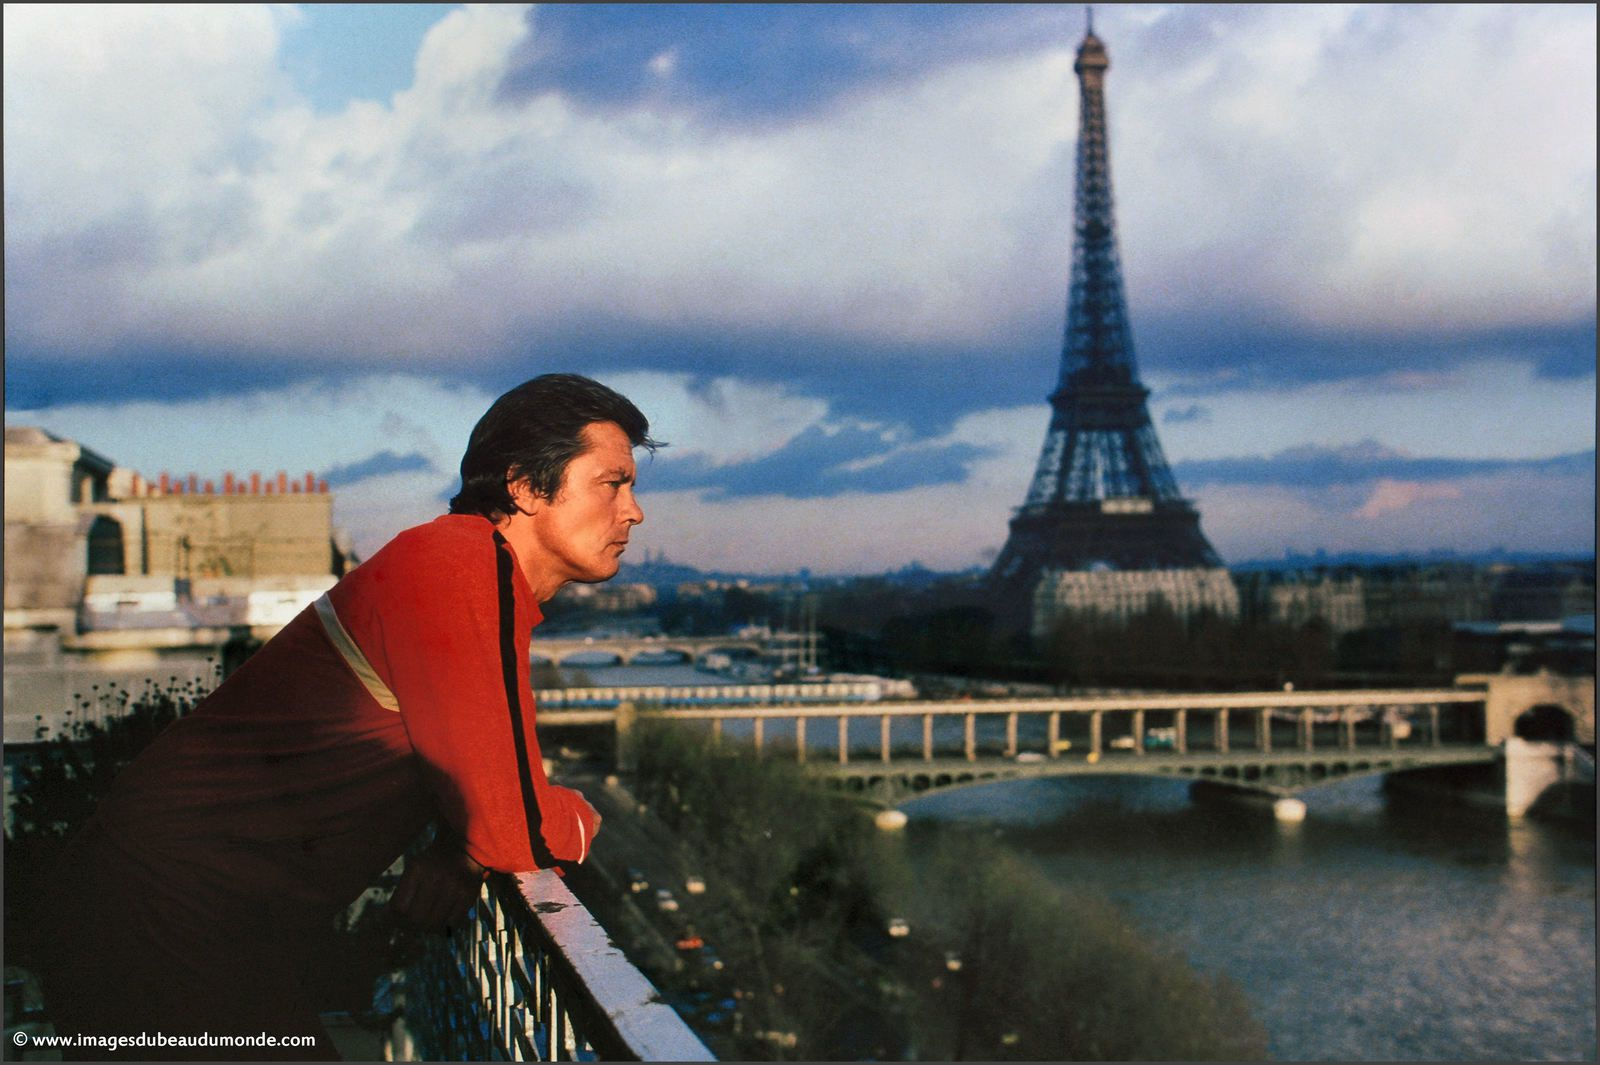 Alain Delon à Paris en ce moment